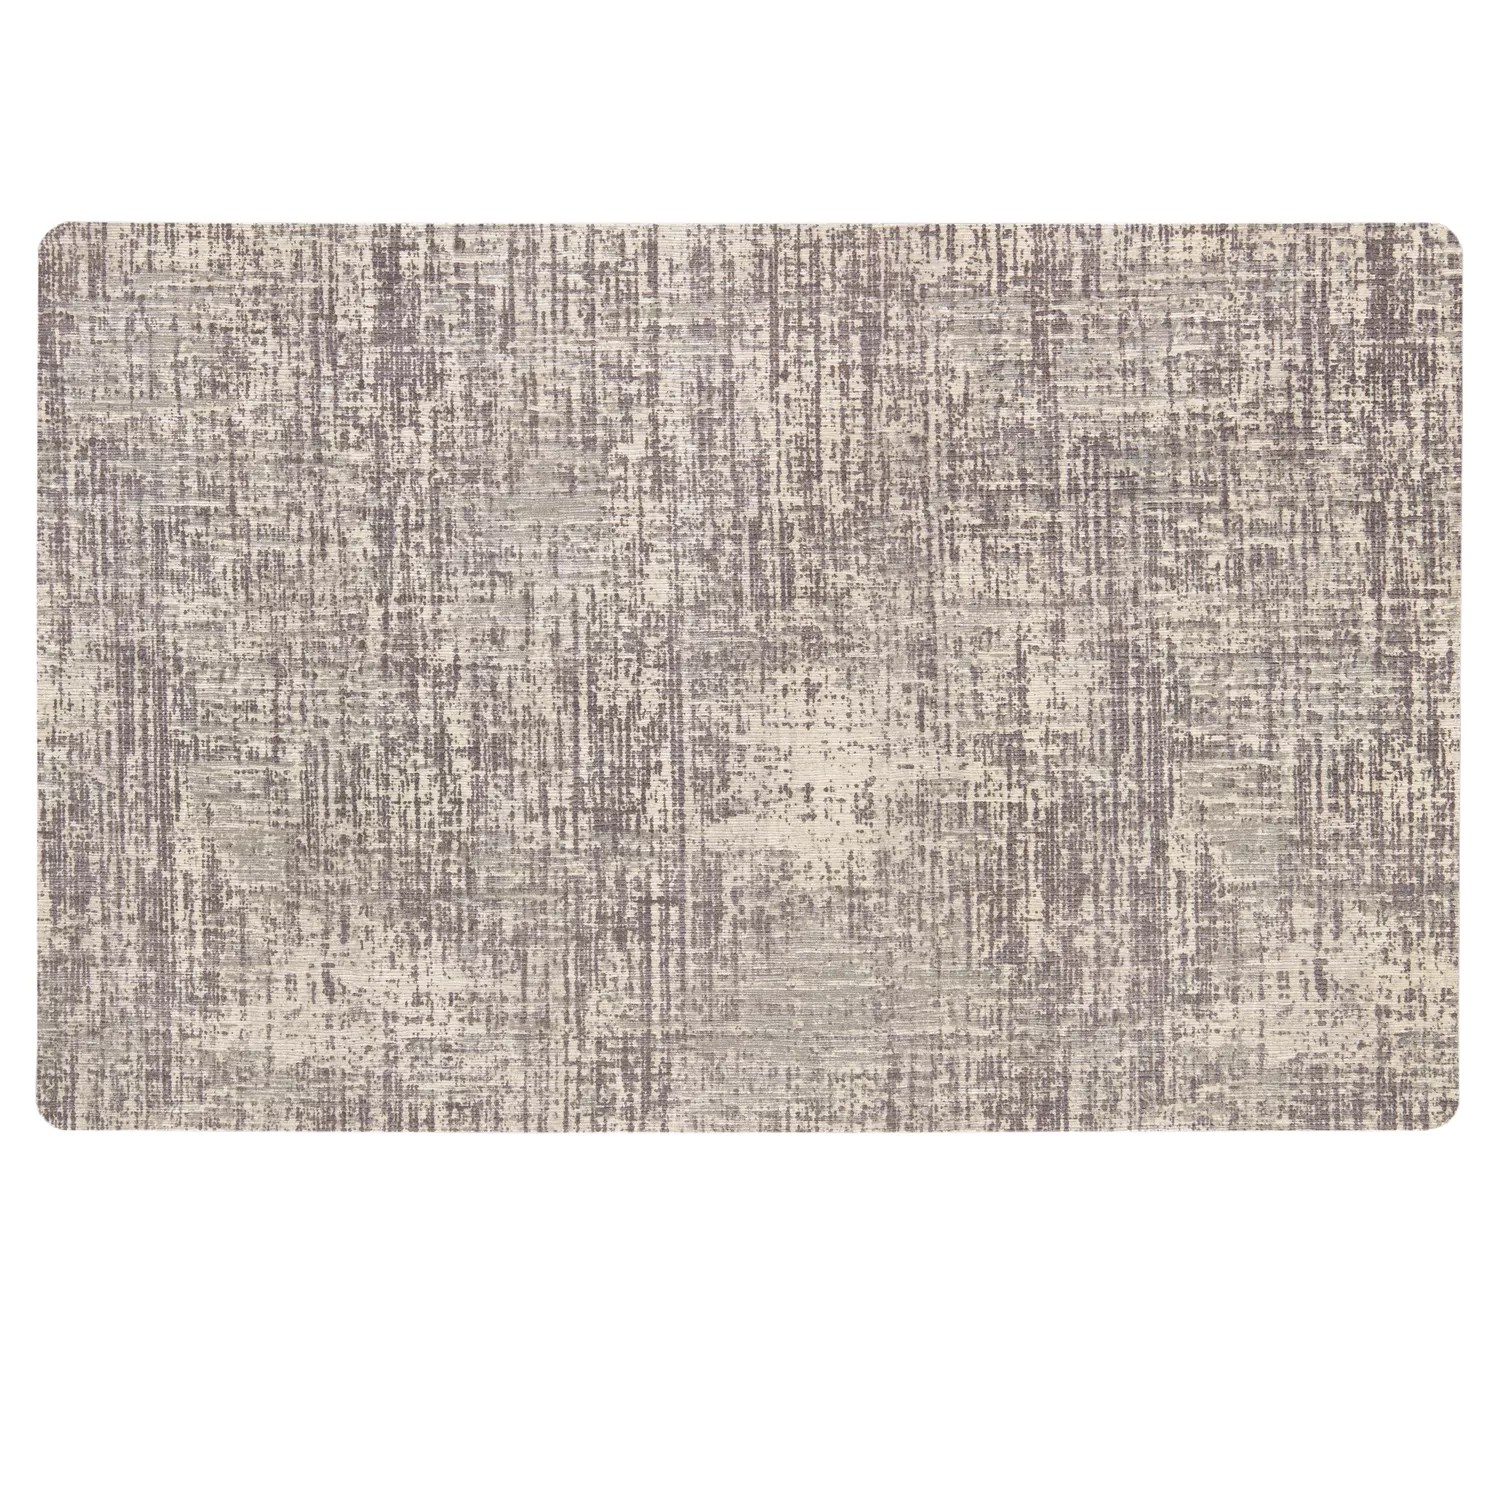 gray kitchen rugs handmade islands grey home decor kohl s mohawk neoprene textured striations mat tan brown